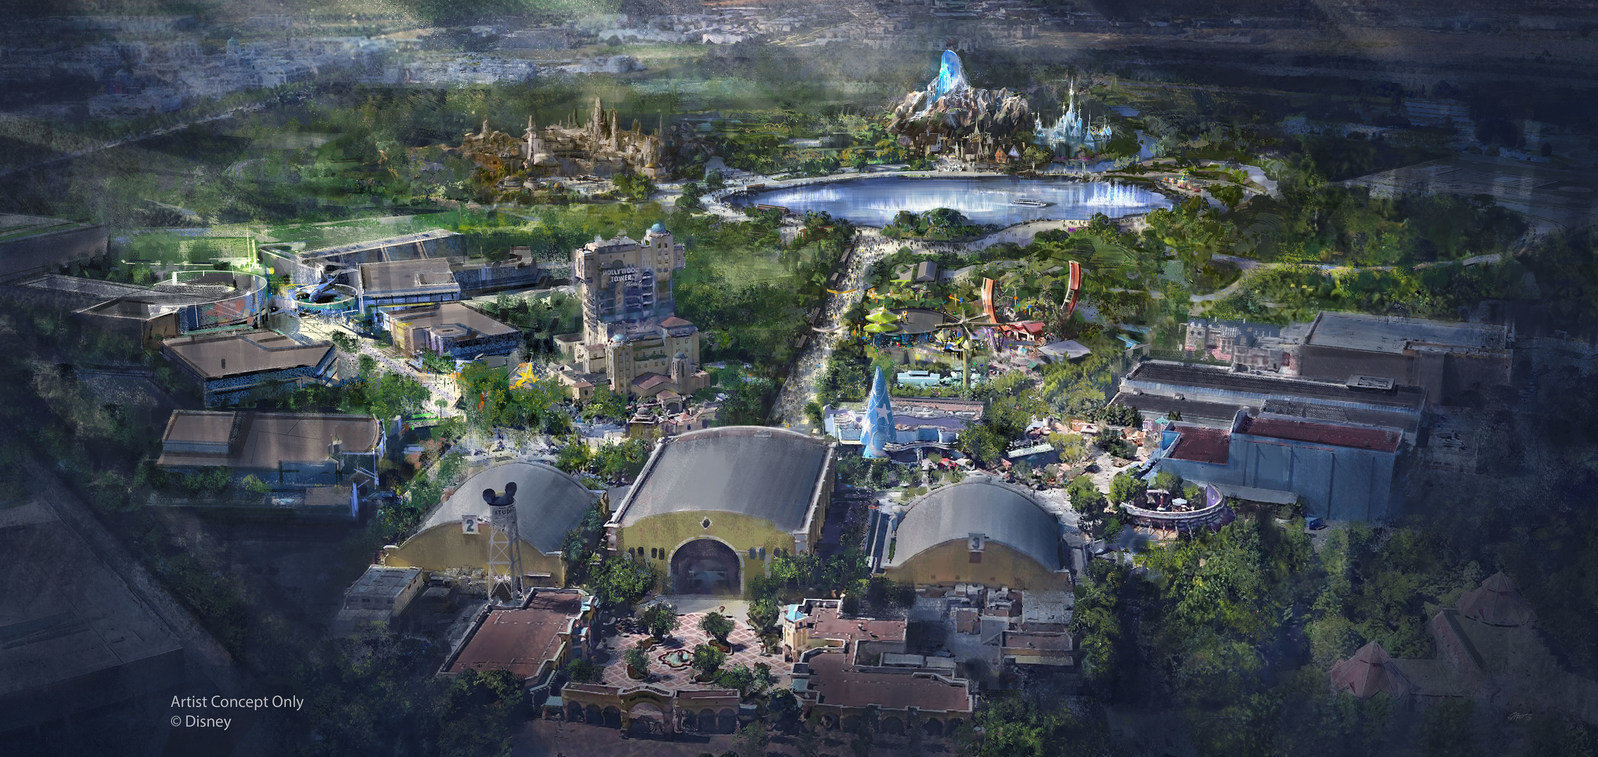 Disneyland Paris Is Undergoing A Huge Expansion And It Sounds Magical